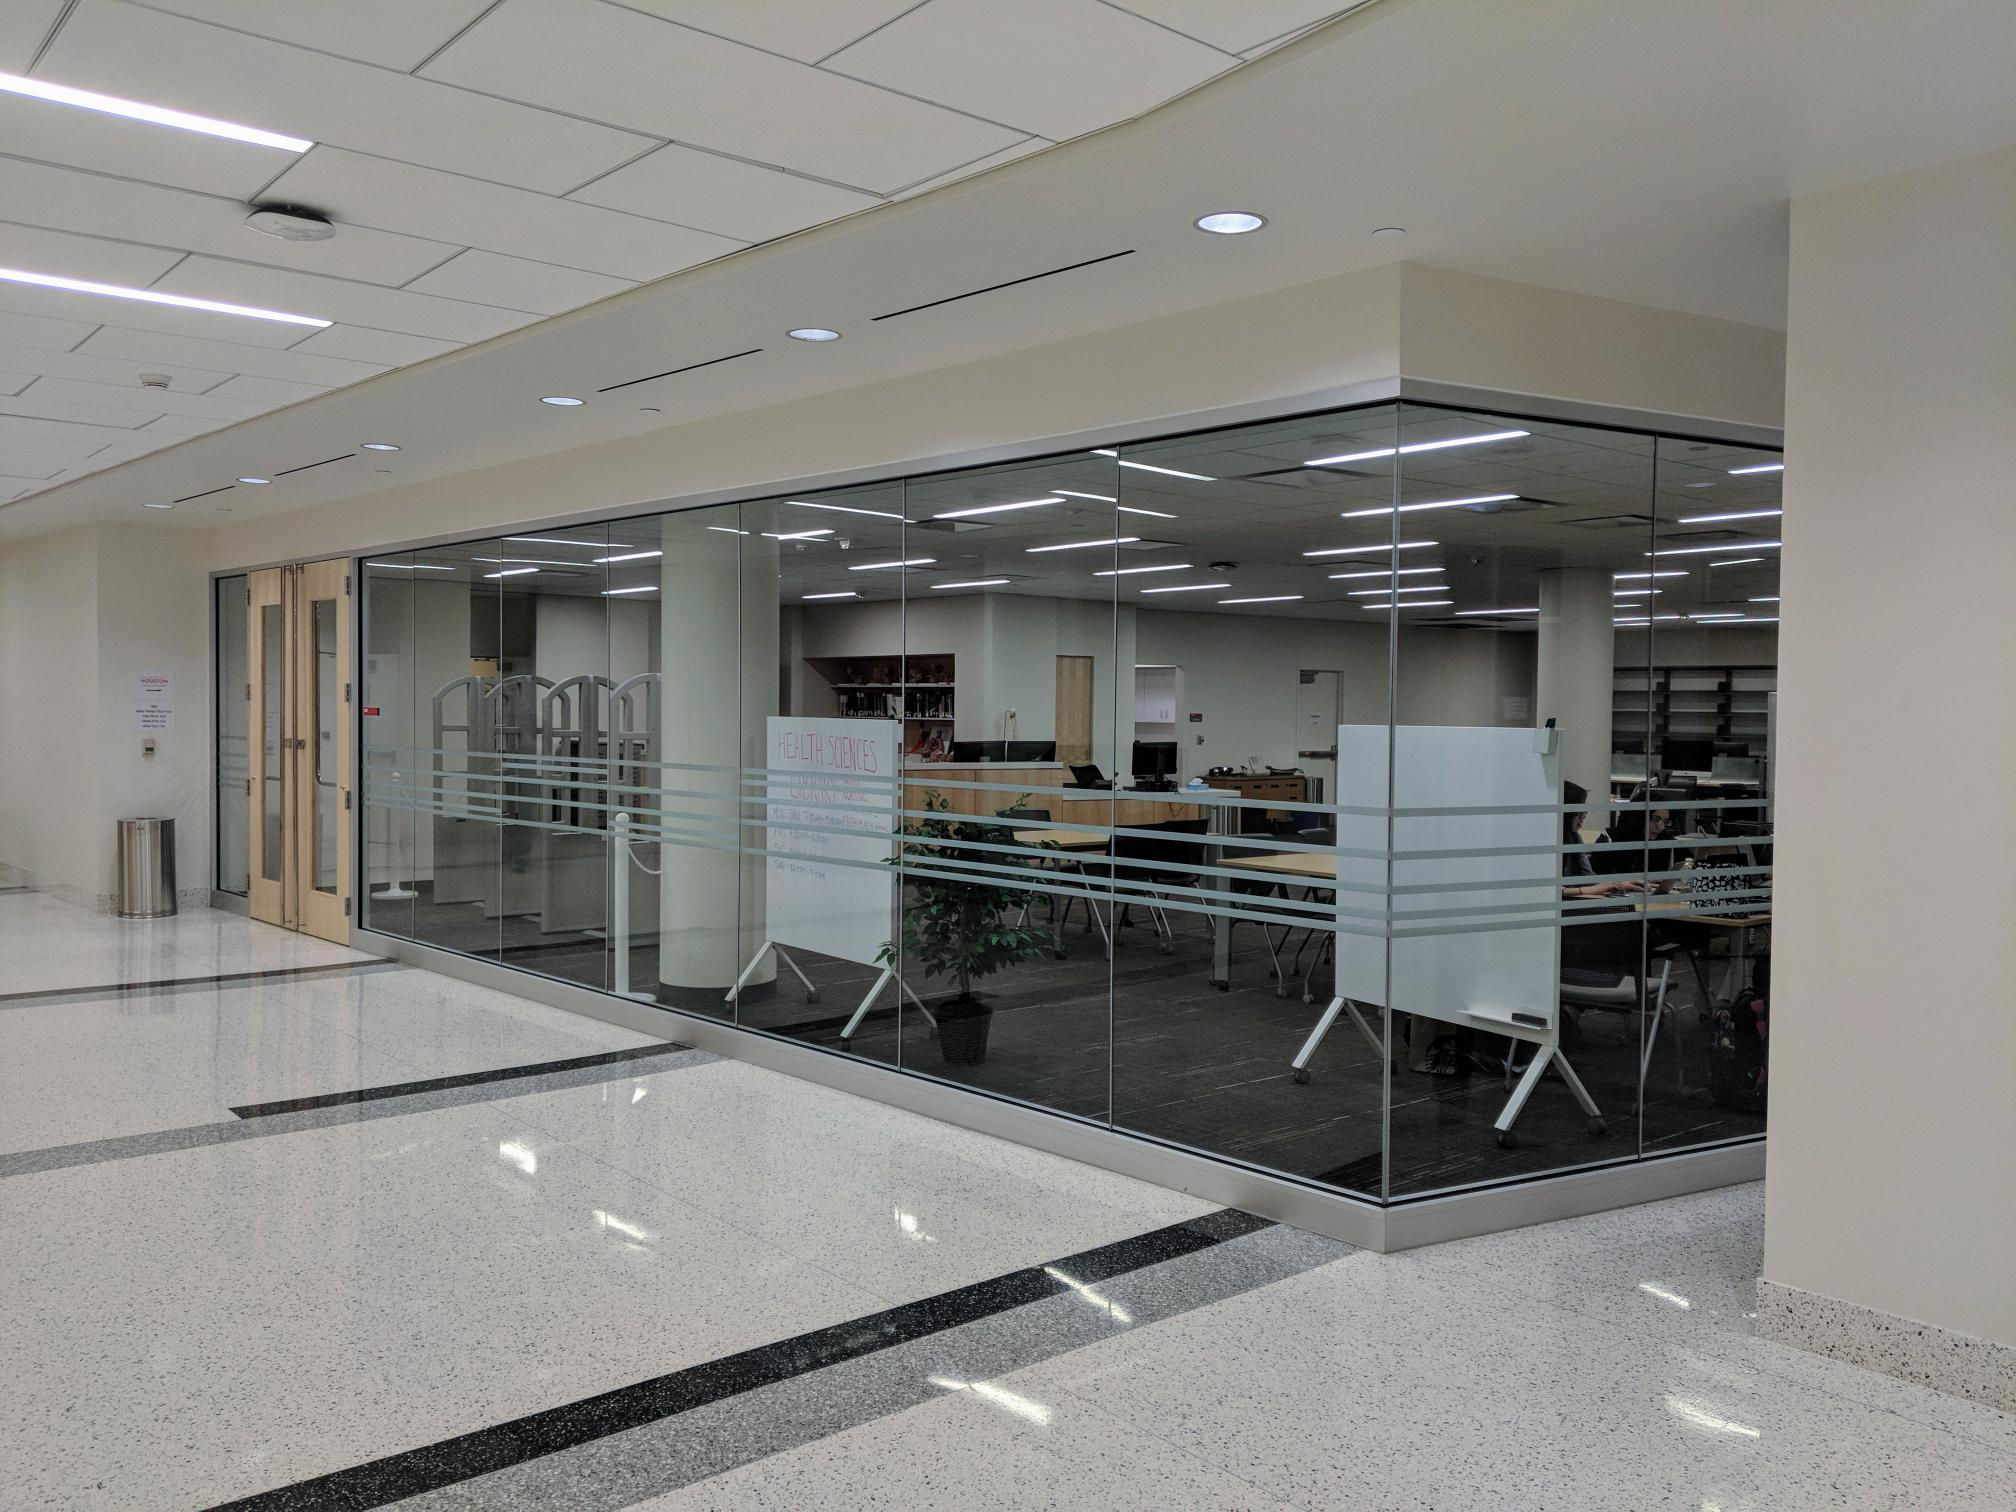 View of the Health Sciences Library from the hallway of Health 1 building